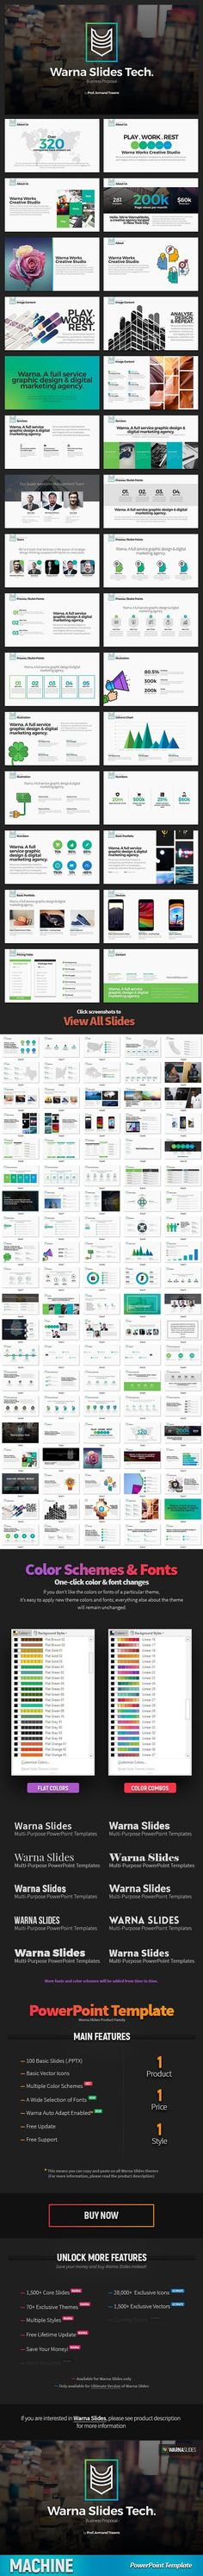 Explore more than presentation templates to use for PowerPoint, Keynote, infographics, pitchdecks, and digital marketing. Powerpoint Slide Designs, Powerpoint Presentation Templates, Presentation Layout, Presentation Slides, Layout Template, Keynote Template, Flyer Template, Magazine Layout Design, Web Design Trends